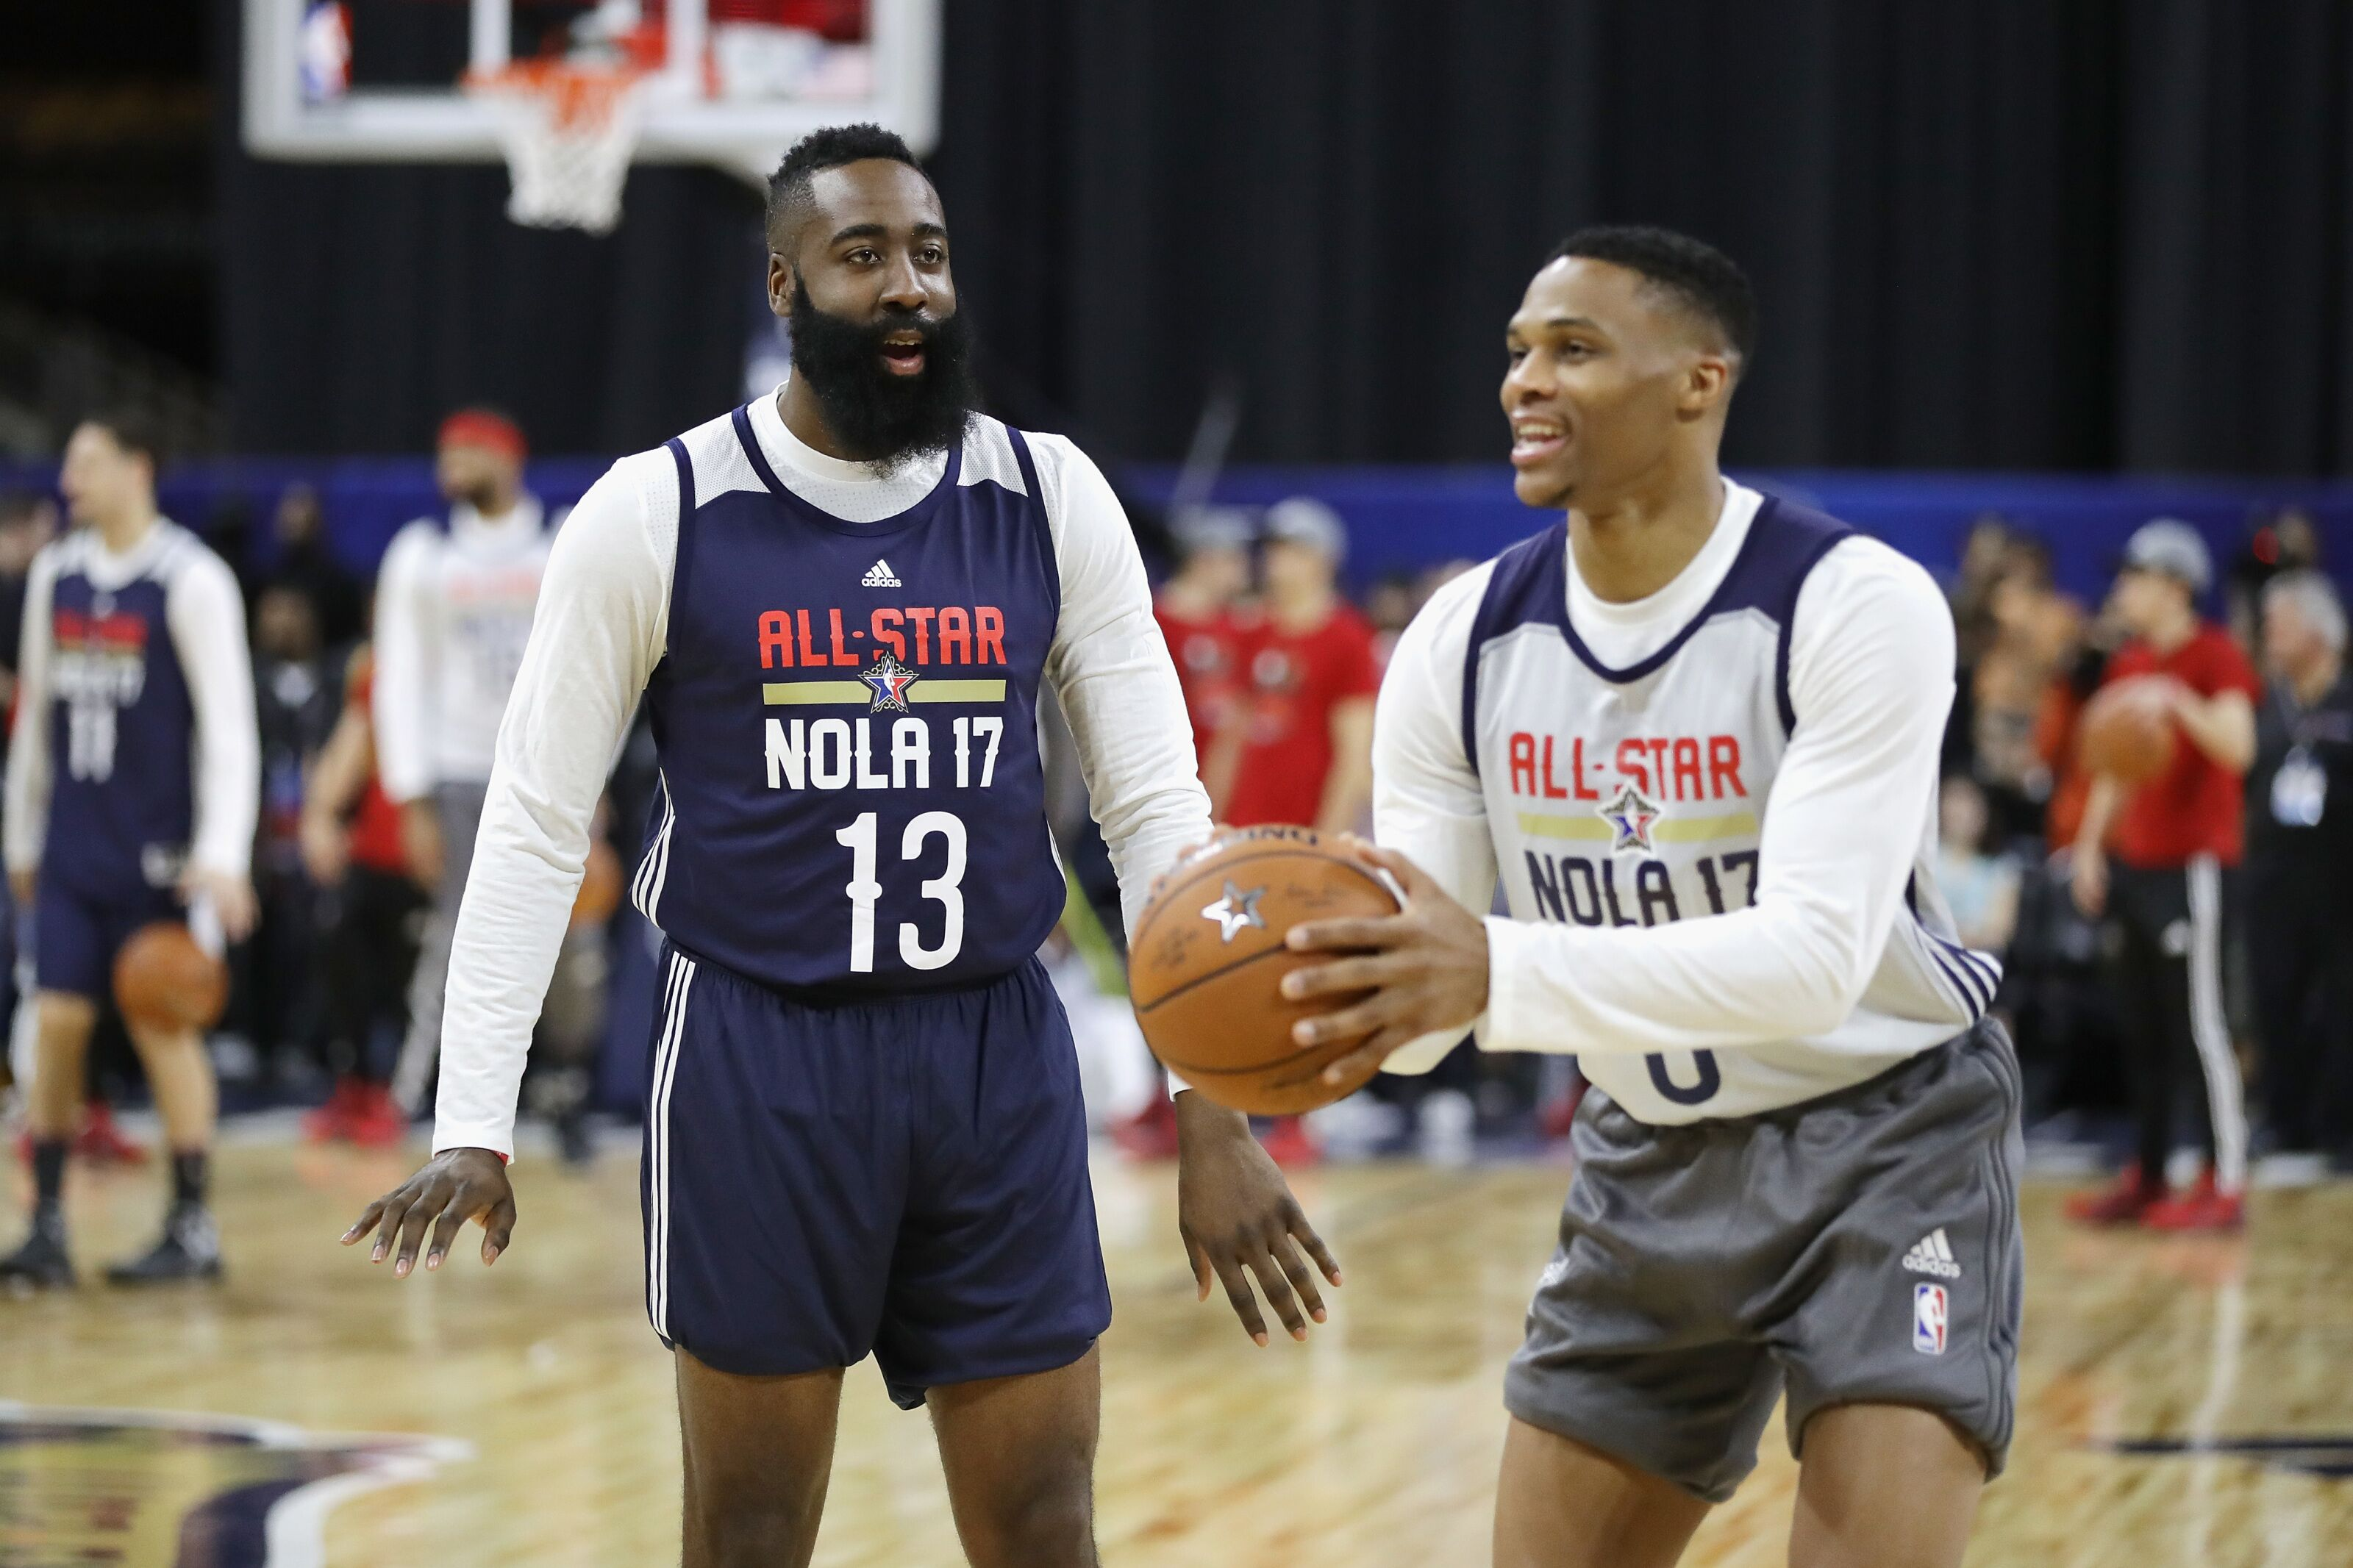 e9e428b694c5 NBA Player Comparison  Russell Westbrook vs. James Harden